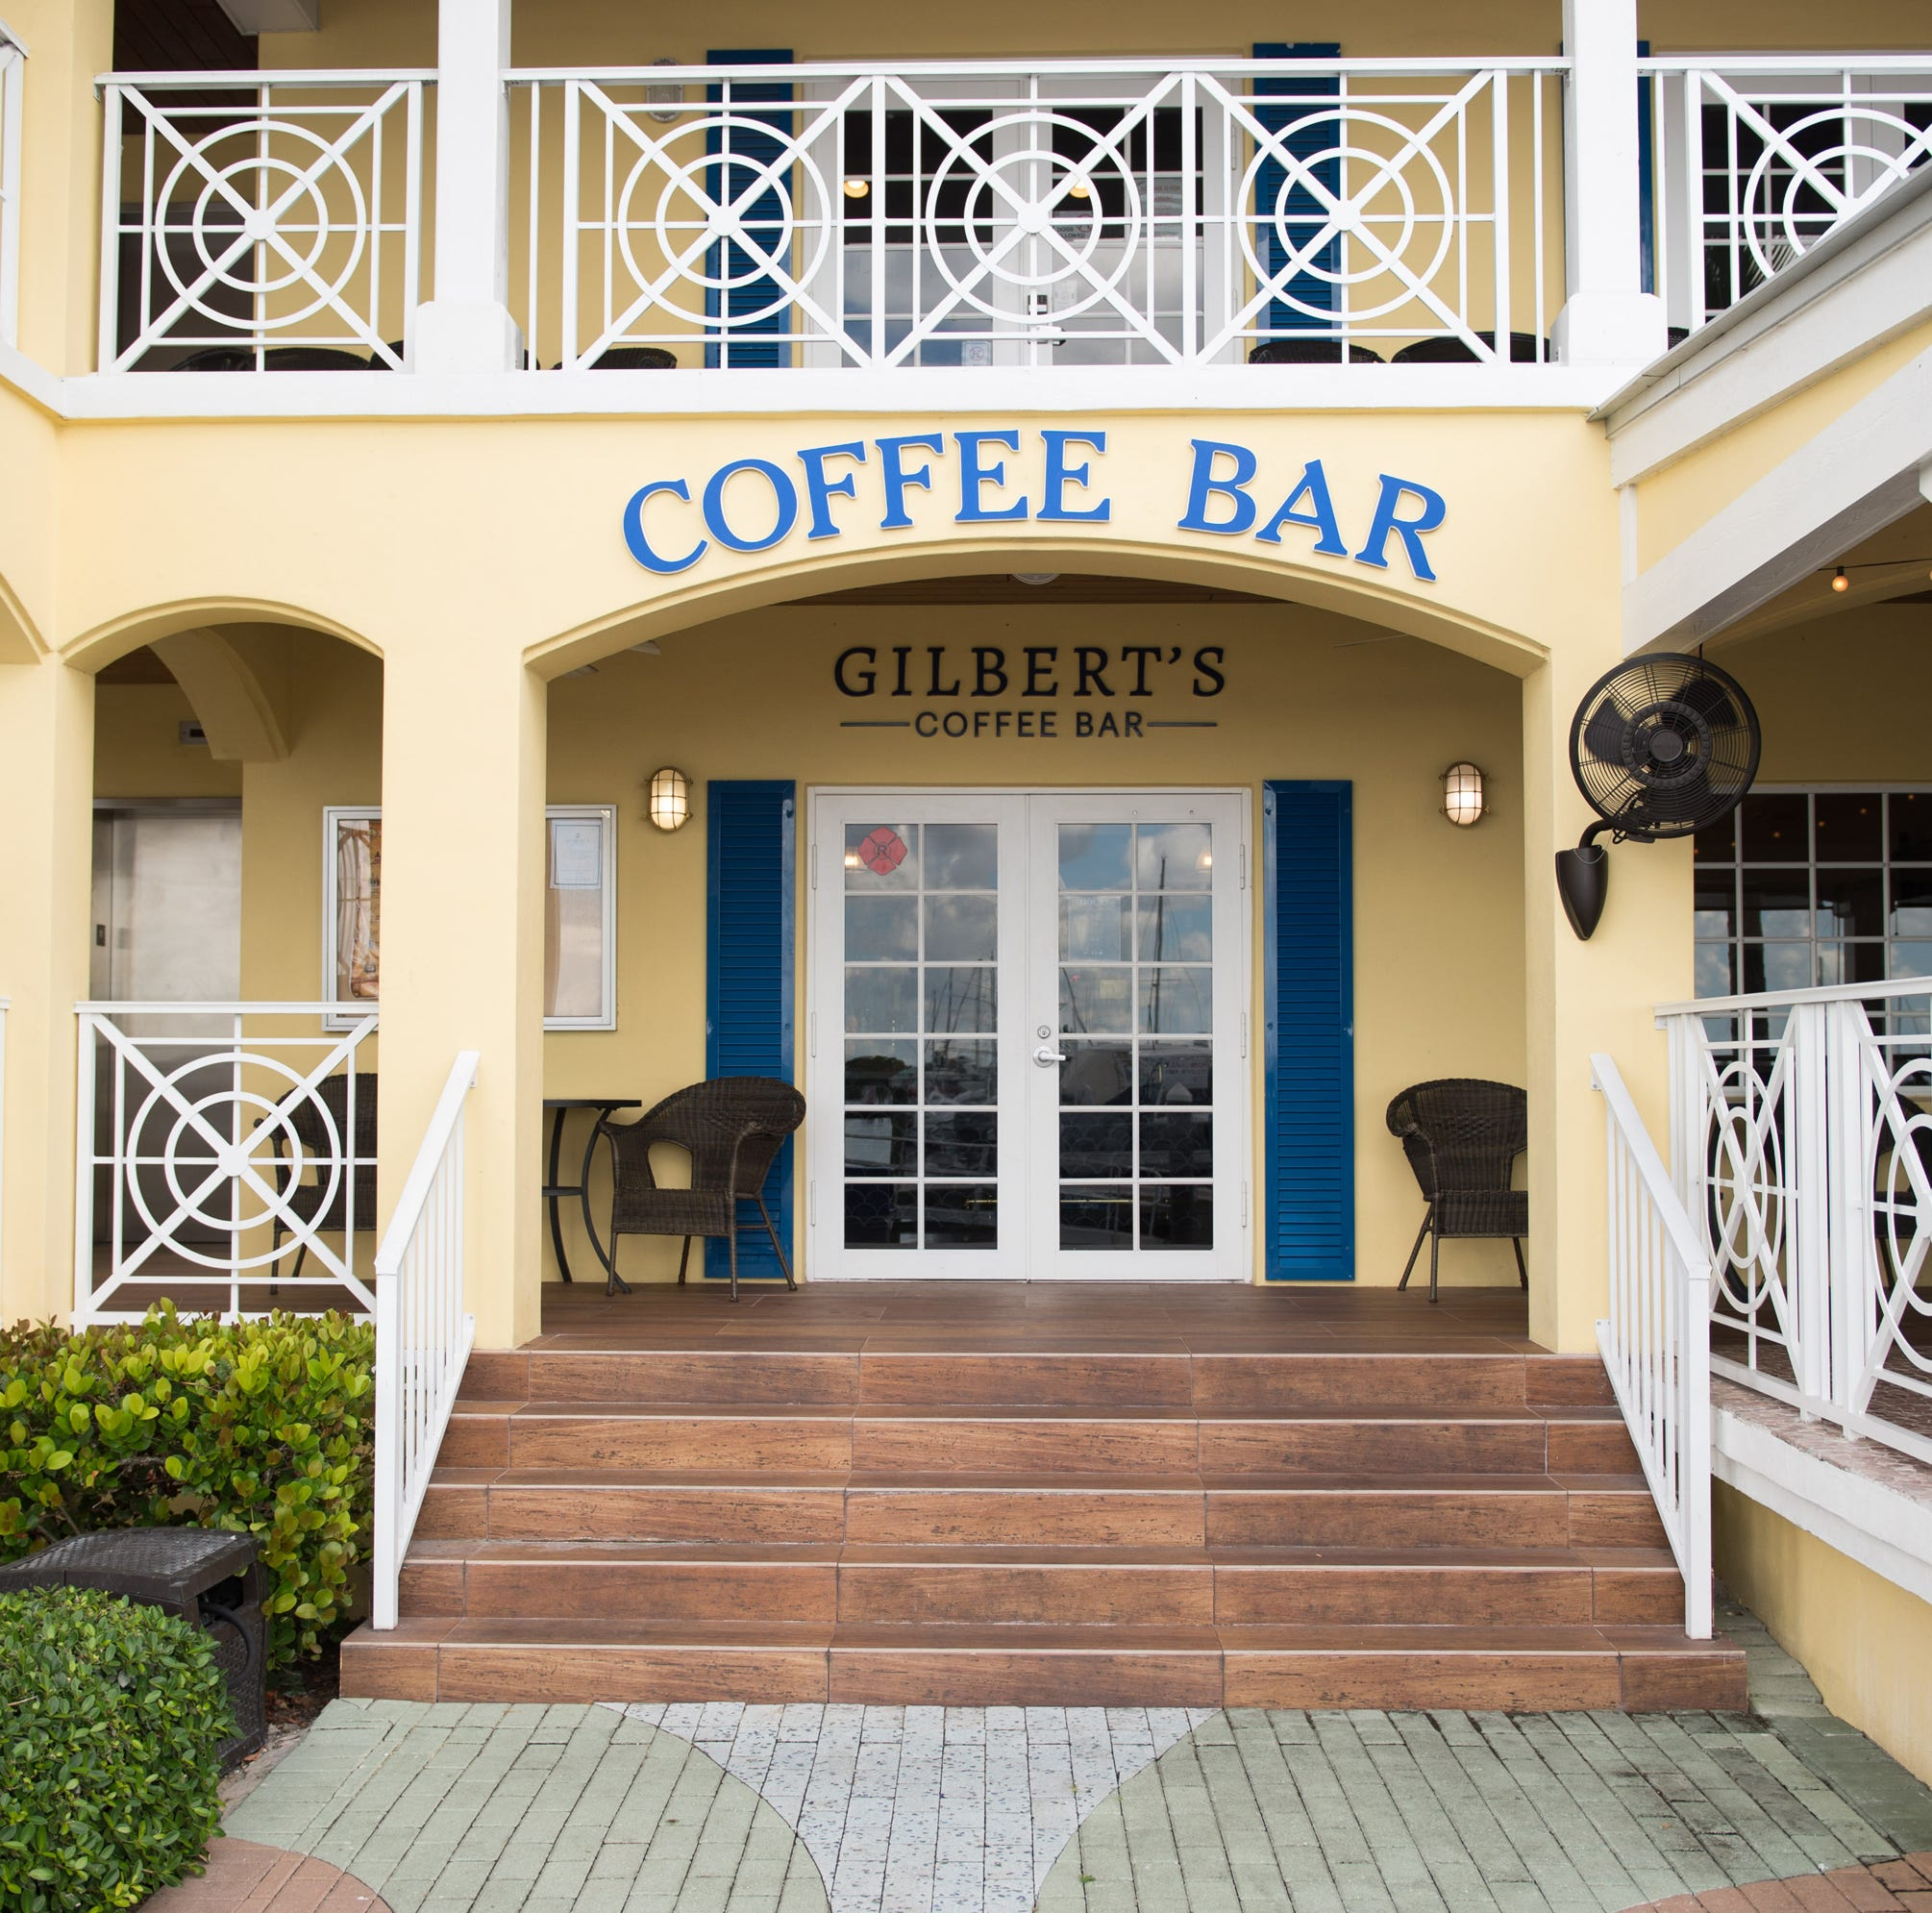 Cool fall places to hangout in Stuart include coffee bar, music venue